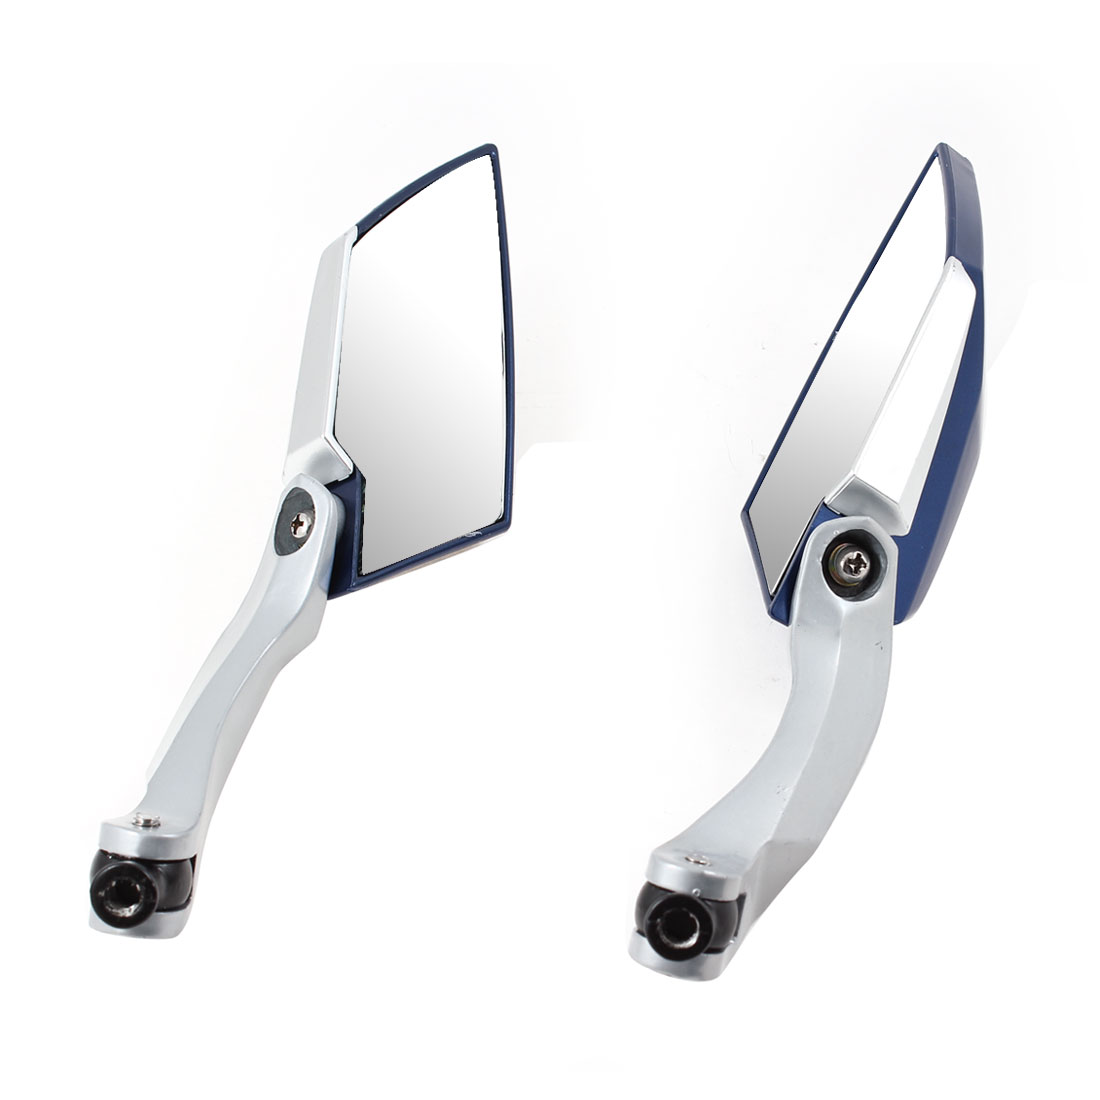 2 Pcs Blue Silver Tone Adjustable 360 Degree Wide Angle Blind Spot Rearview Mirror for Motorcycle